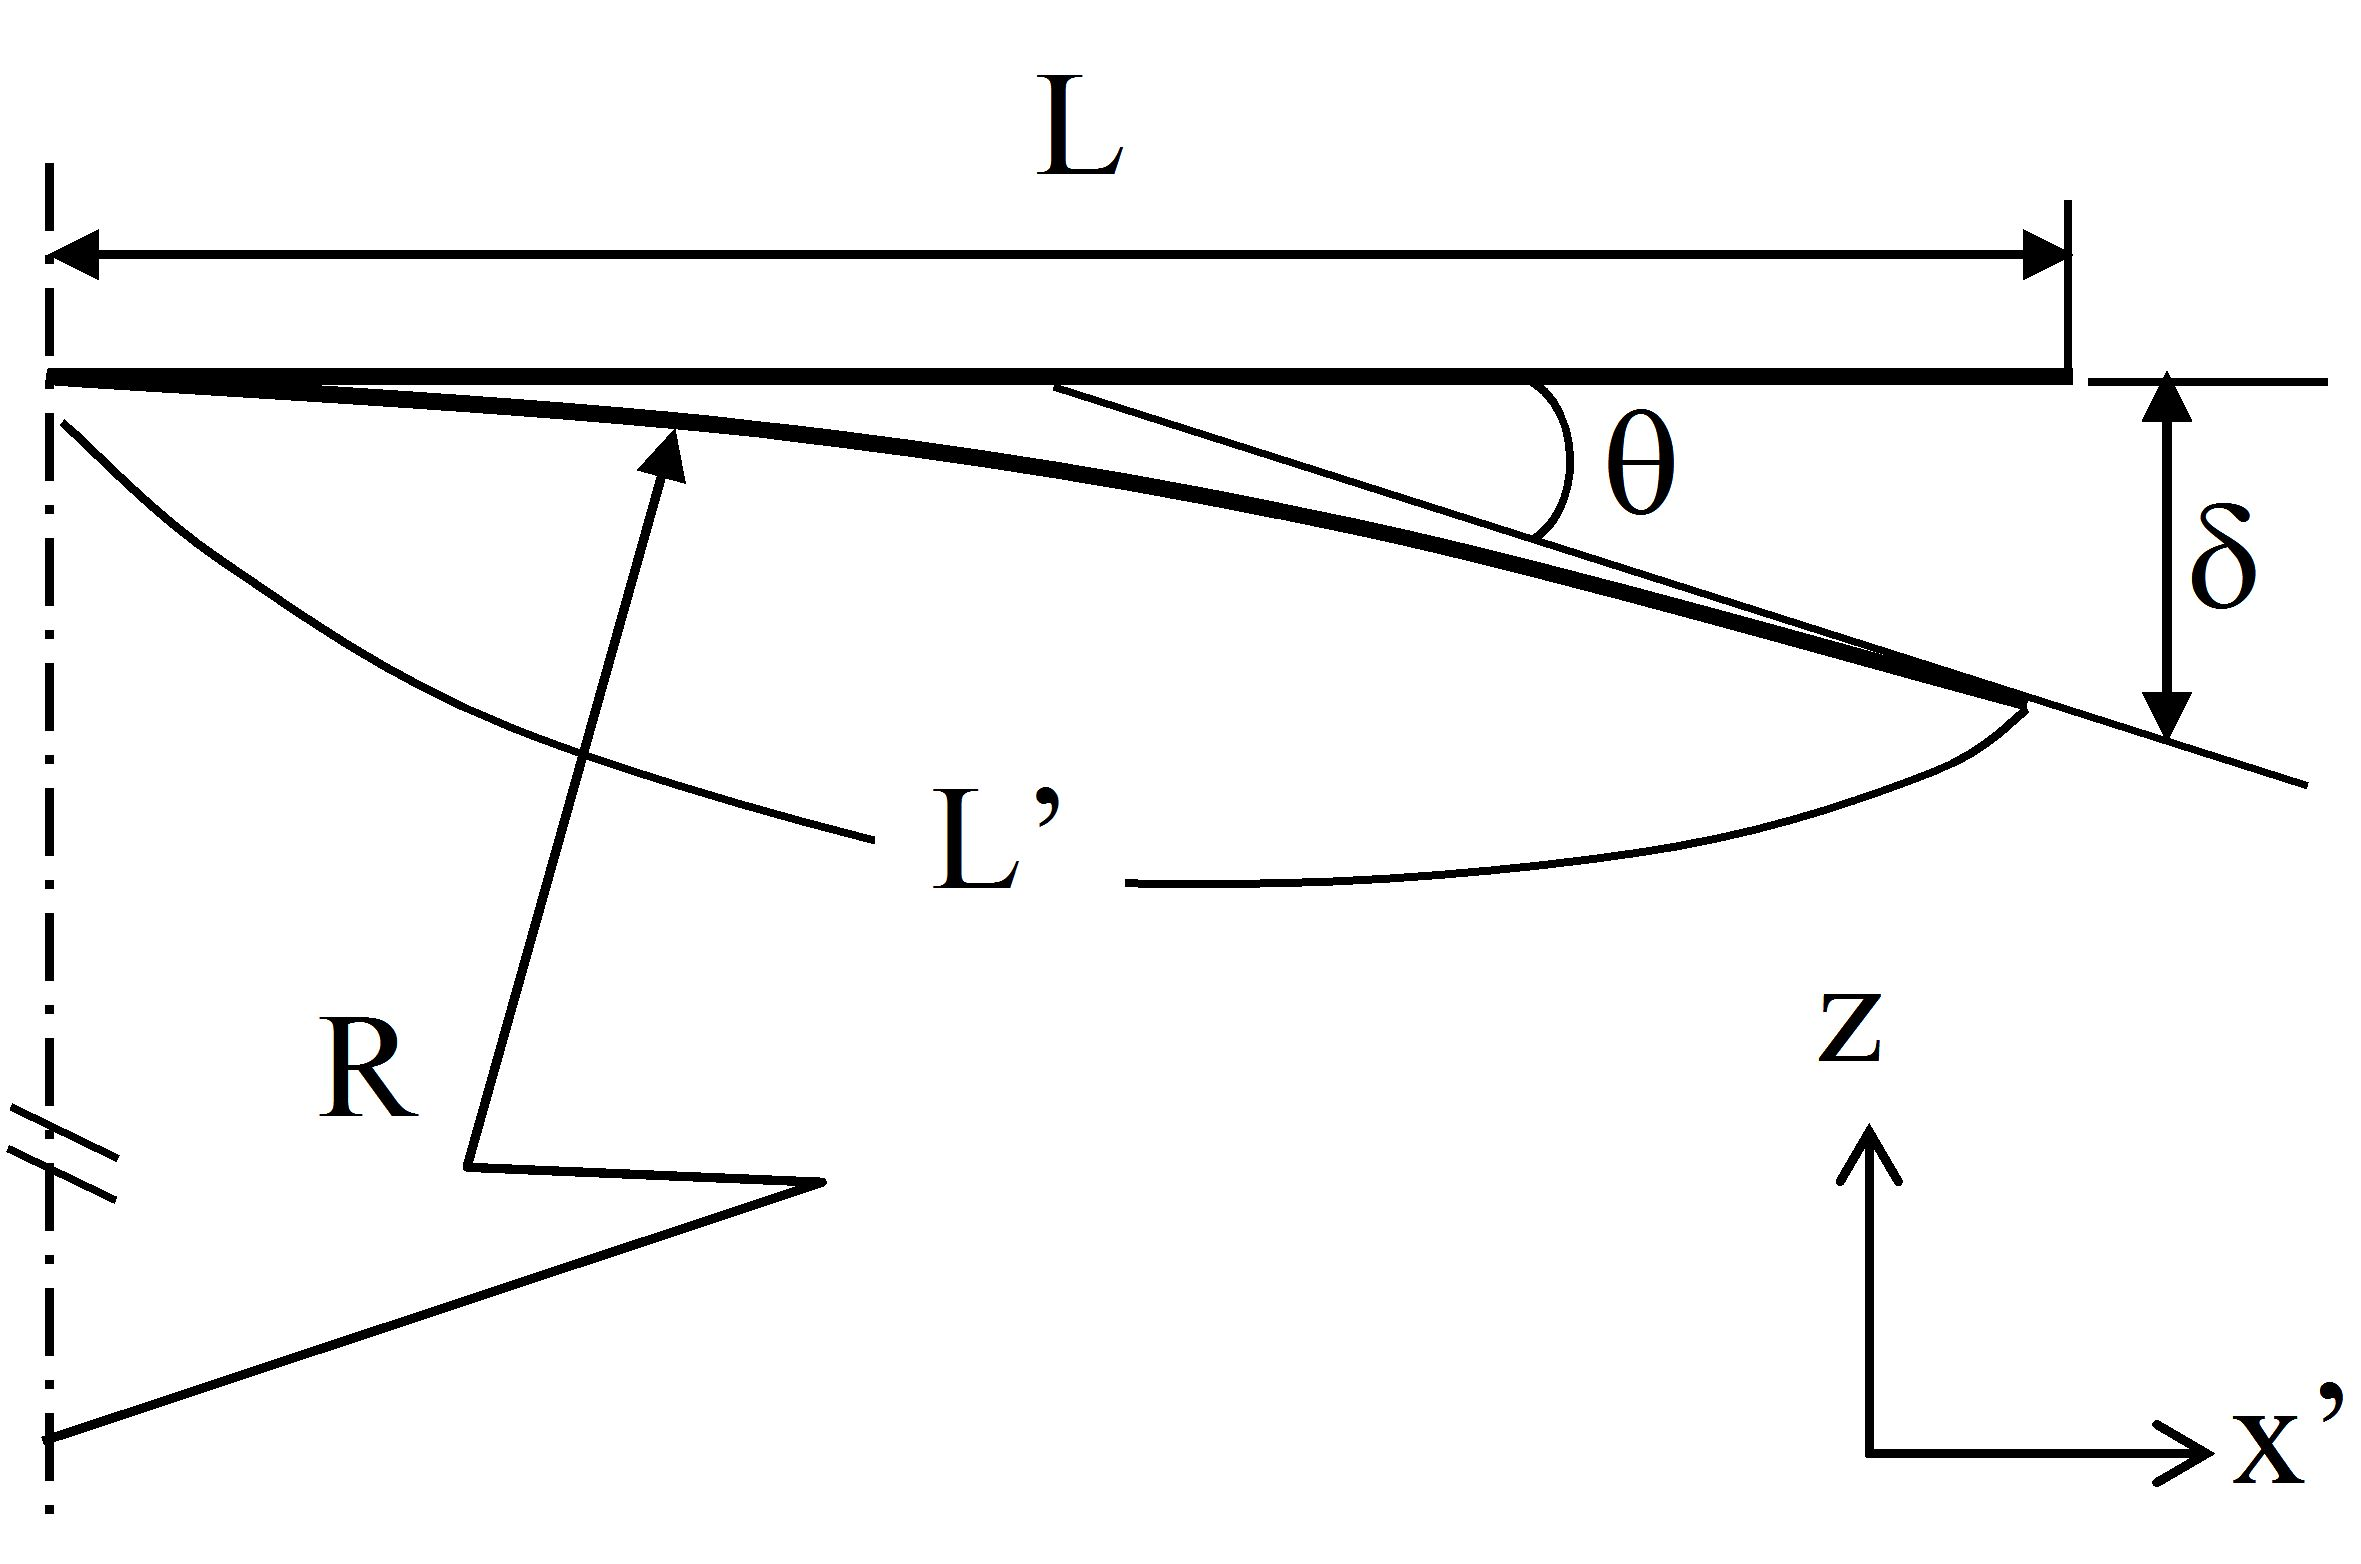 Application of Thermo-Viscoelastic Laminated Plate Theory